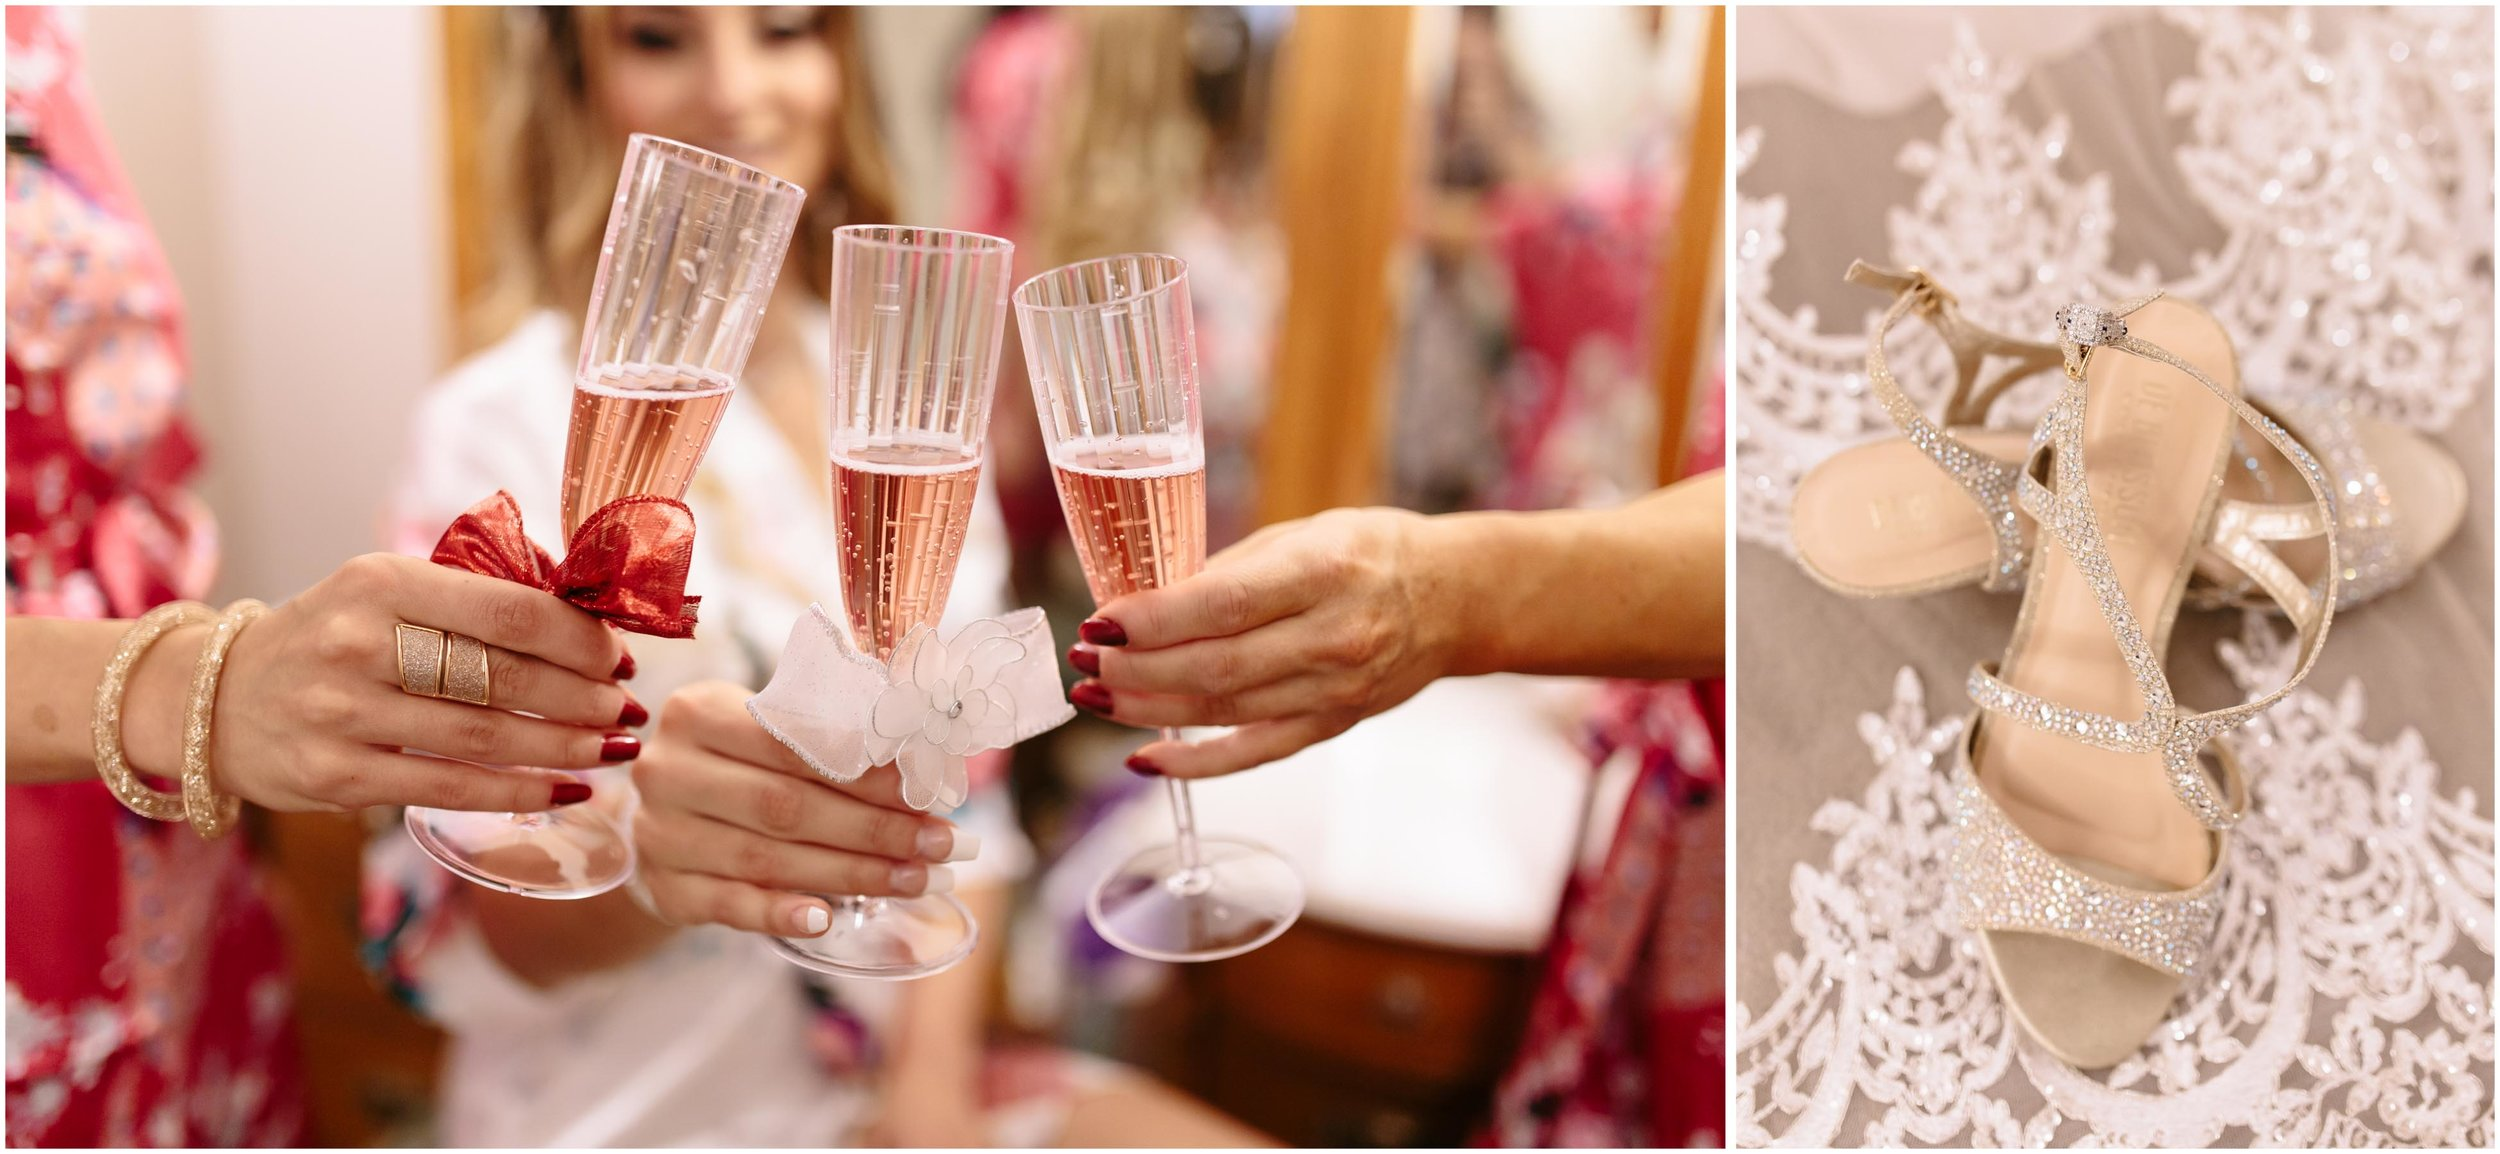 Scenic New Hampshire Wedding at Atkinson Resort and Country Club - Bride and bridesmaids drinking champagne; shoes and diamond ring